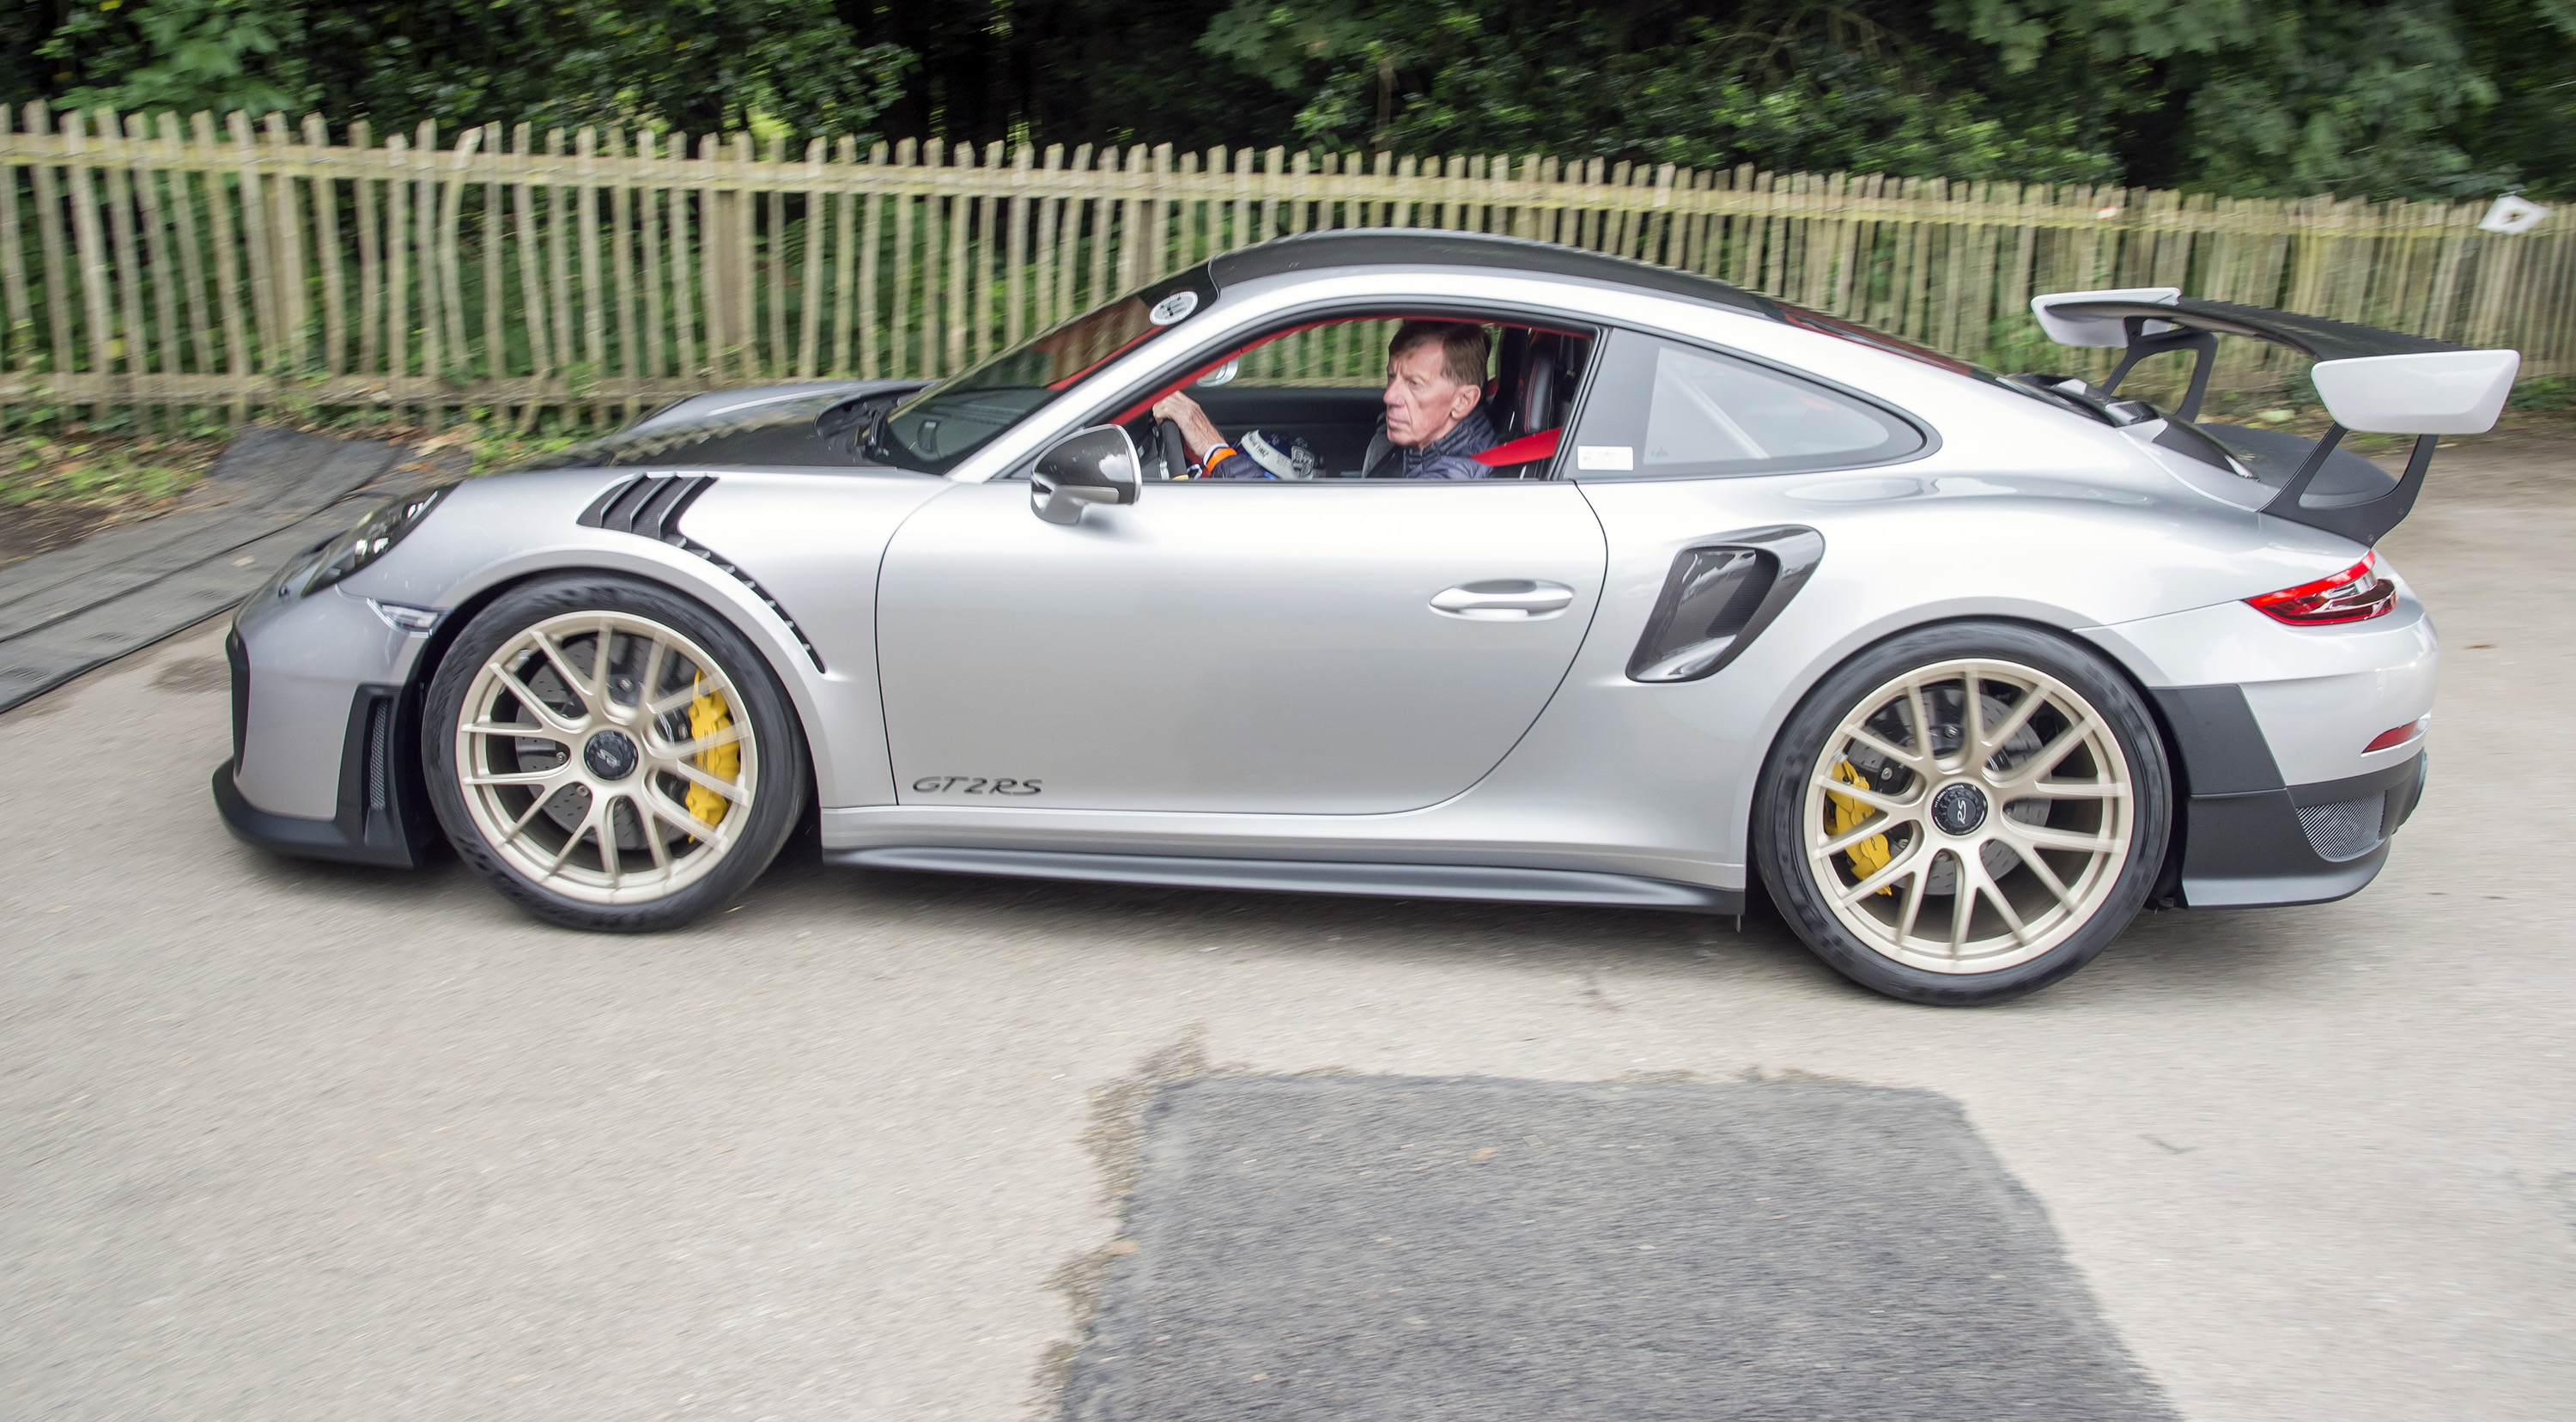 Porsche Driving School >> Porsche GT2 RS revealed at Goodwood Festival of Speed - photos | CarAdvice